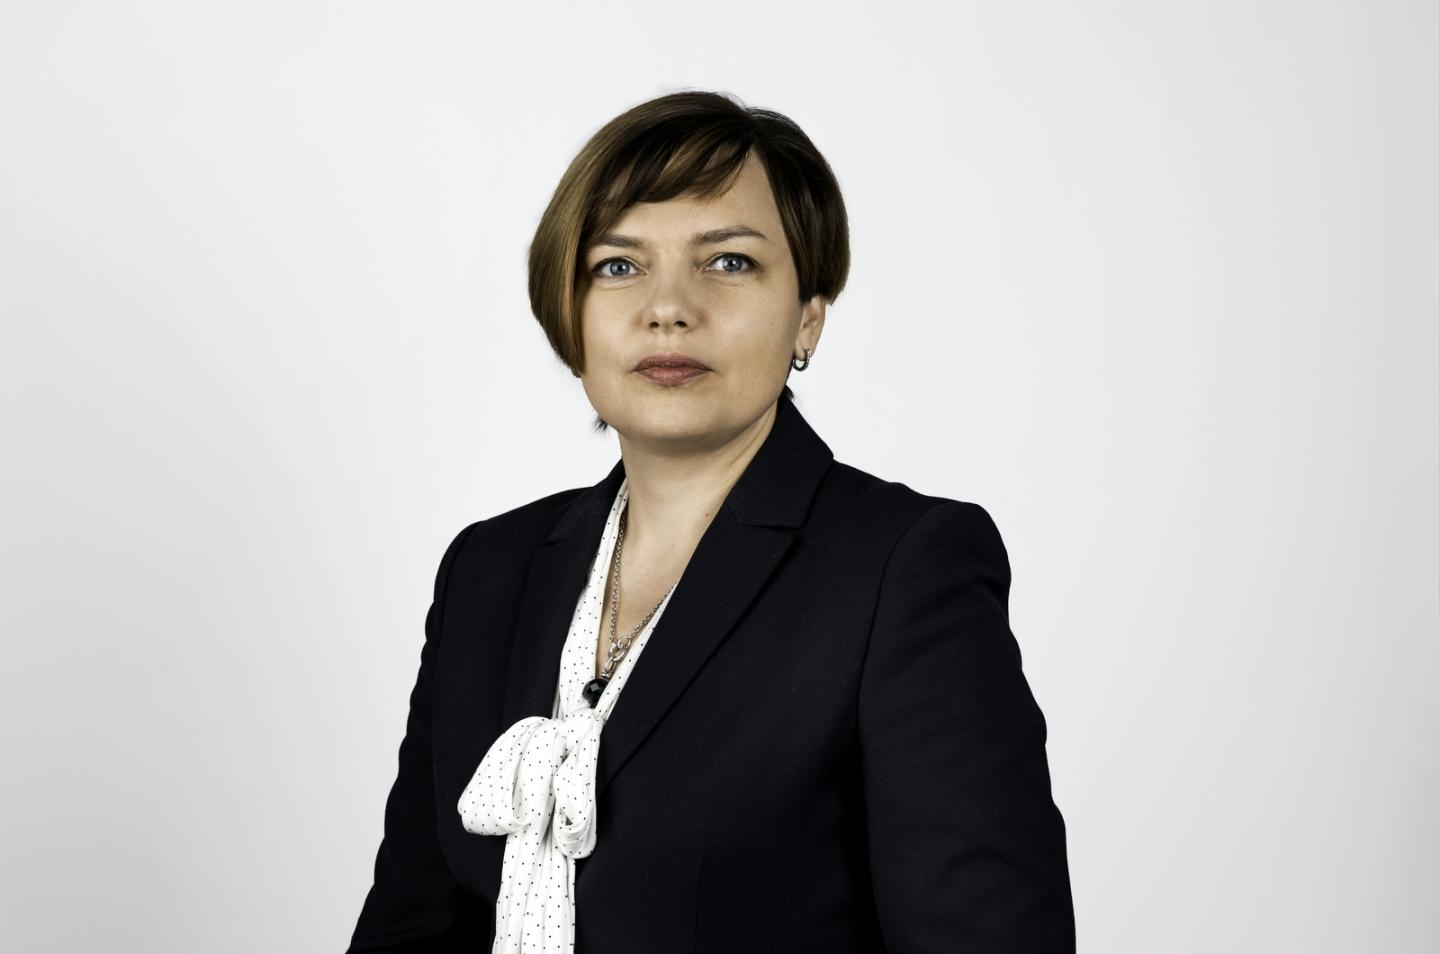 Asta Pundziene, KTU Vice-Rector for Research and Innovations